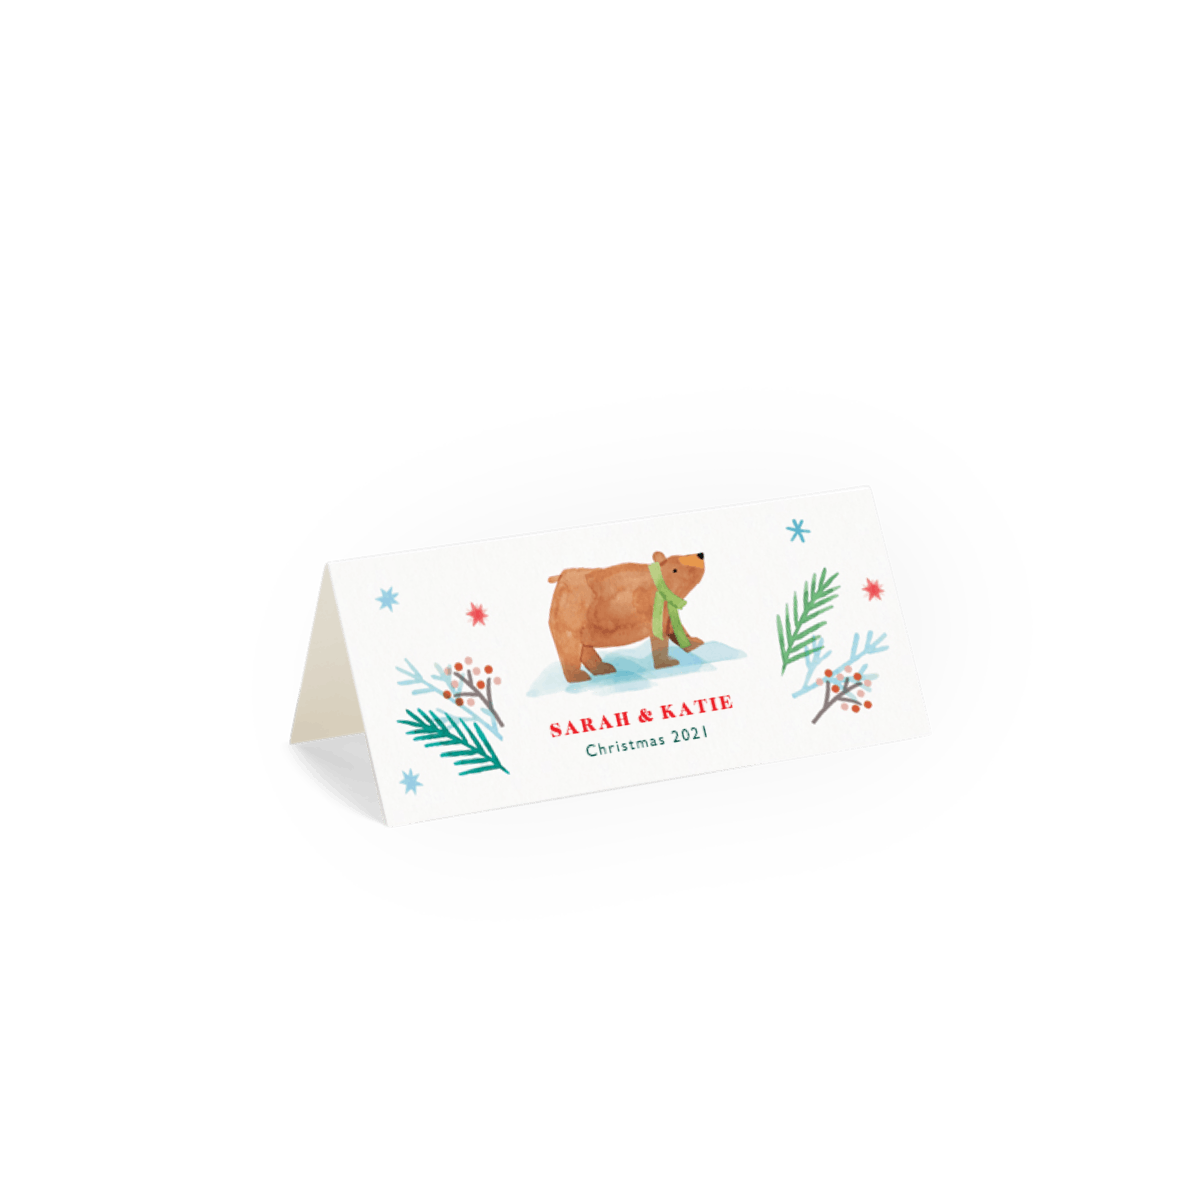 Https%3a%2f%2fwww.papier.com%2fproduct image%2f41785%2f15%2fchristmas fox 10650 back 1532514588.png?ixlib=rb 1.1